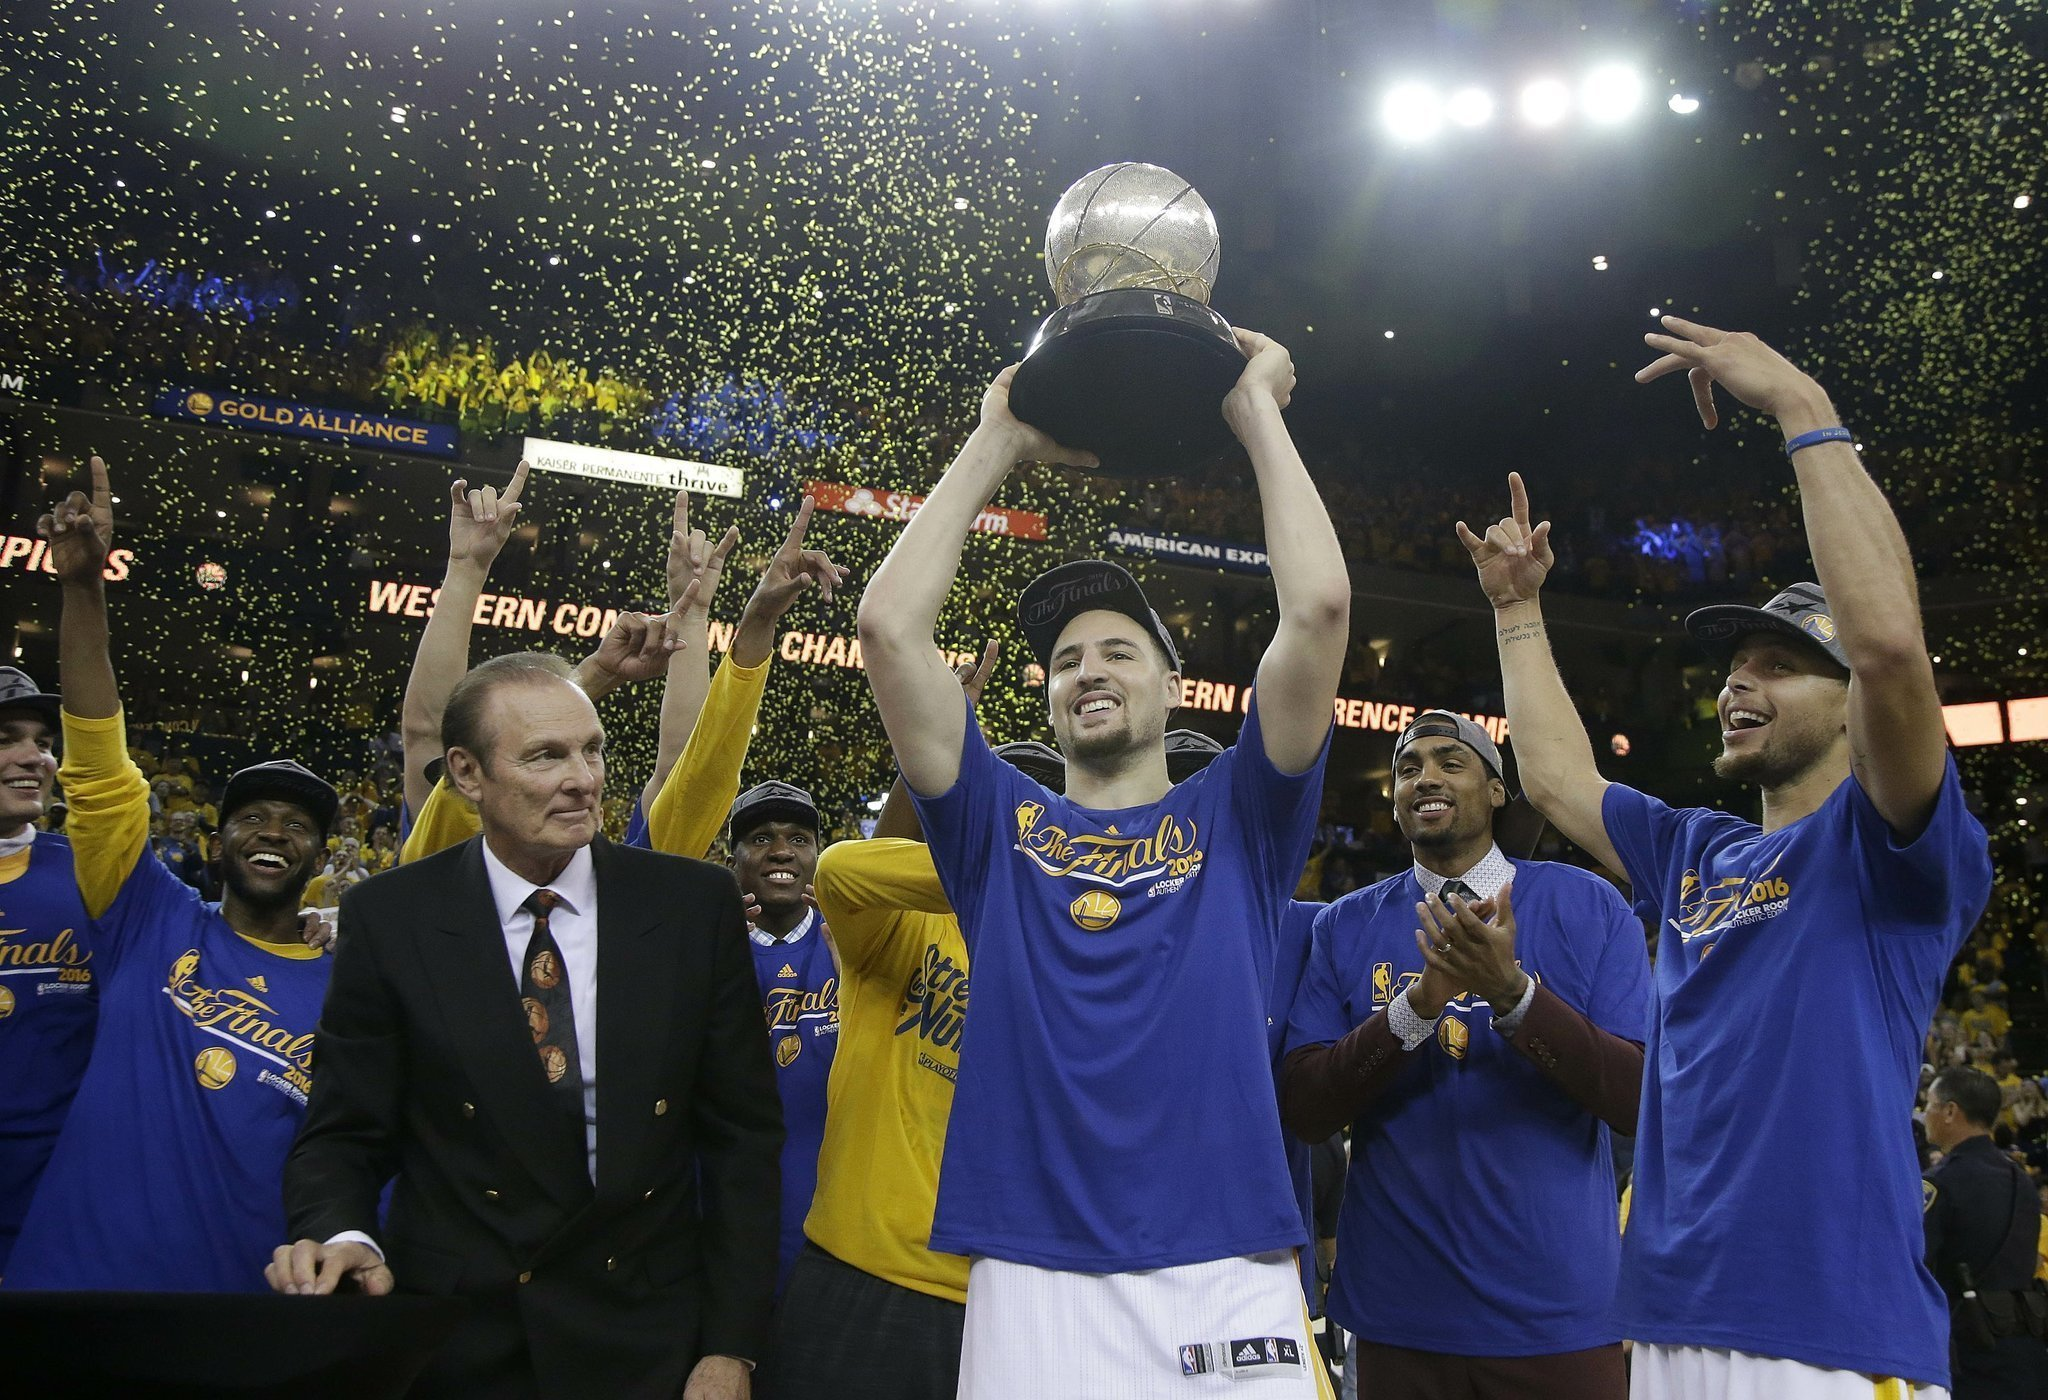 Warriors rally from 3-1 deficit after in-flight meeting - The San Diego  Union-Tribune 371cf6f5a